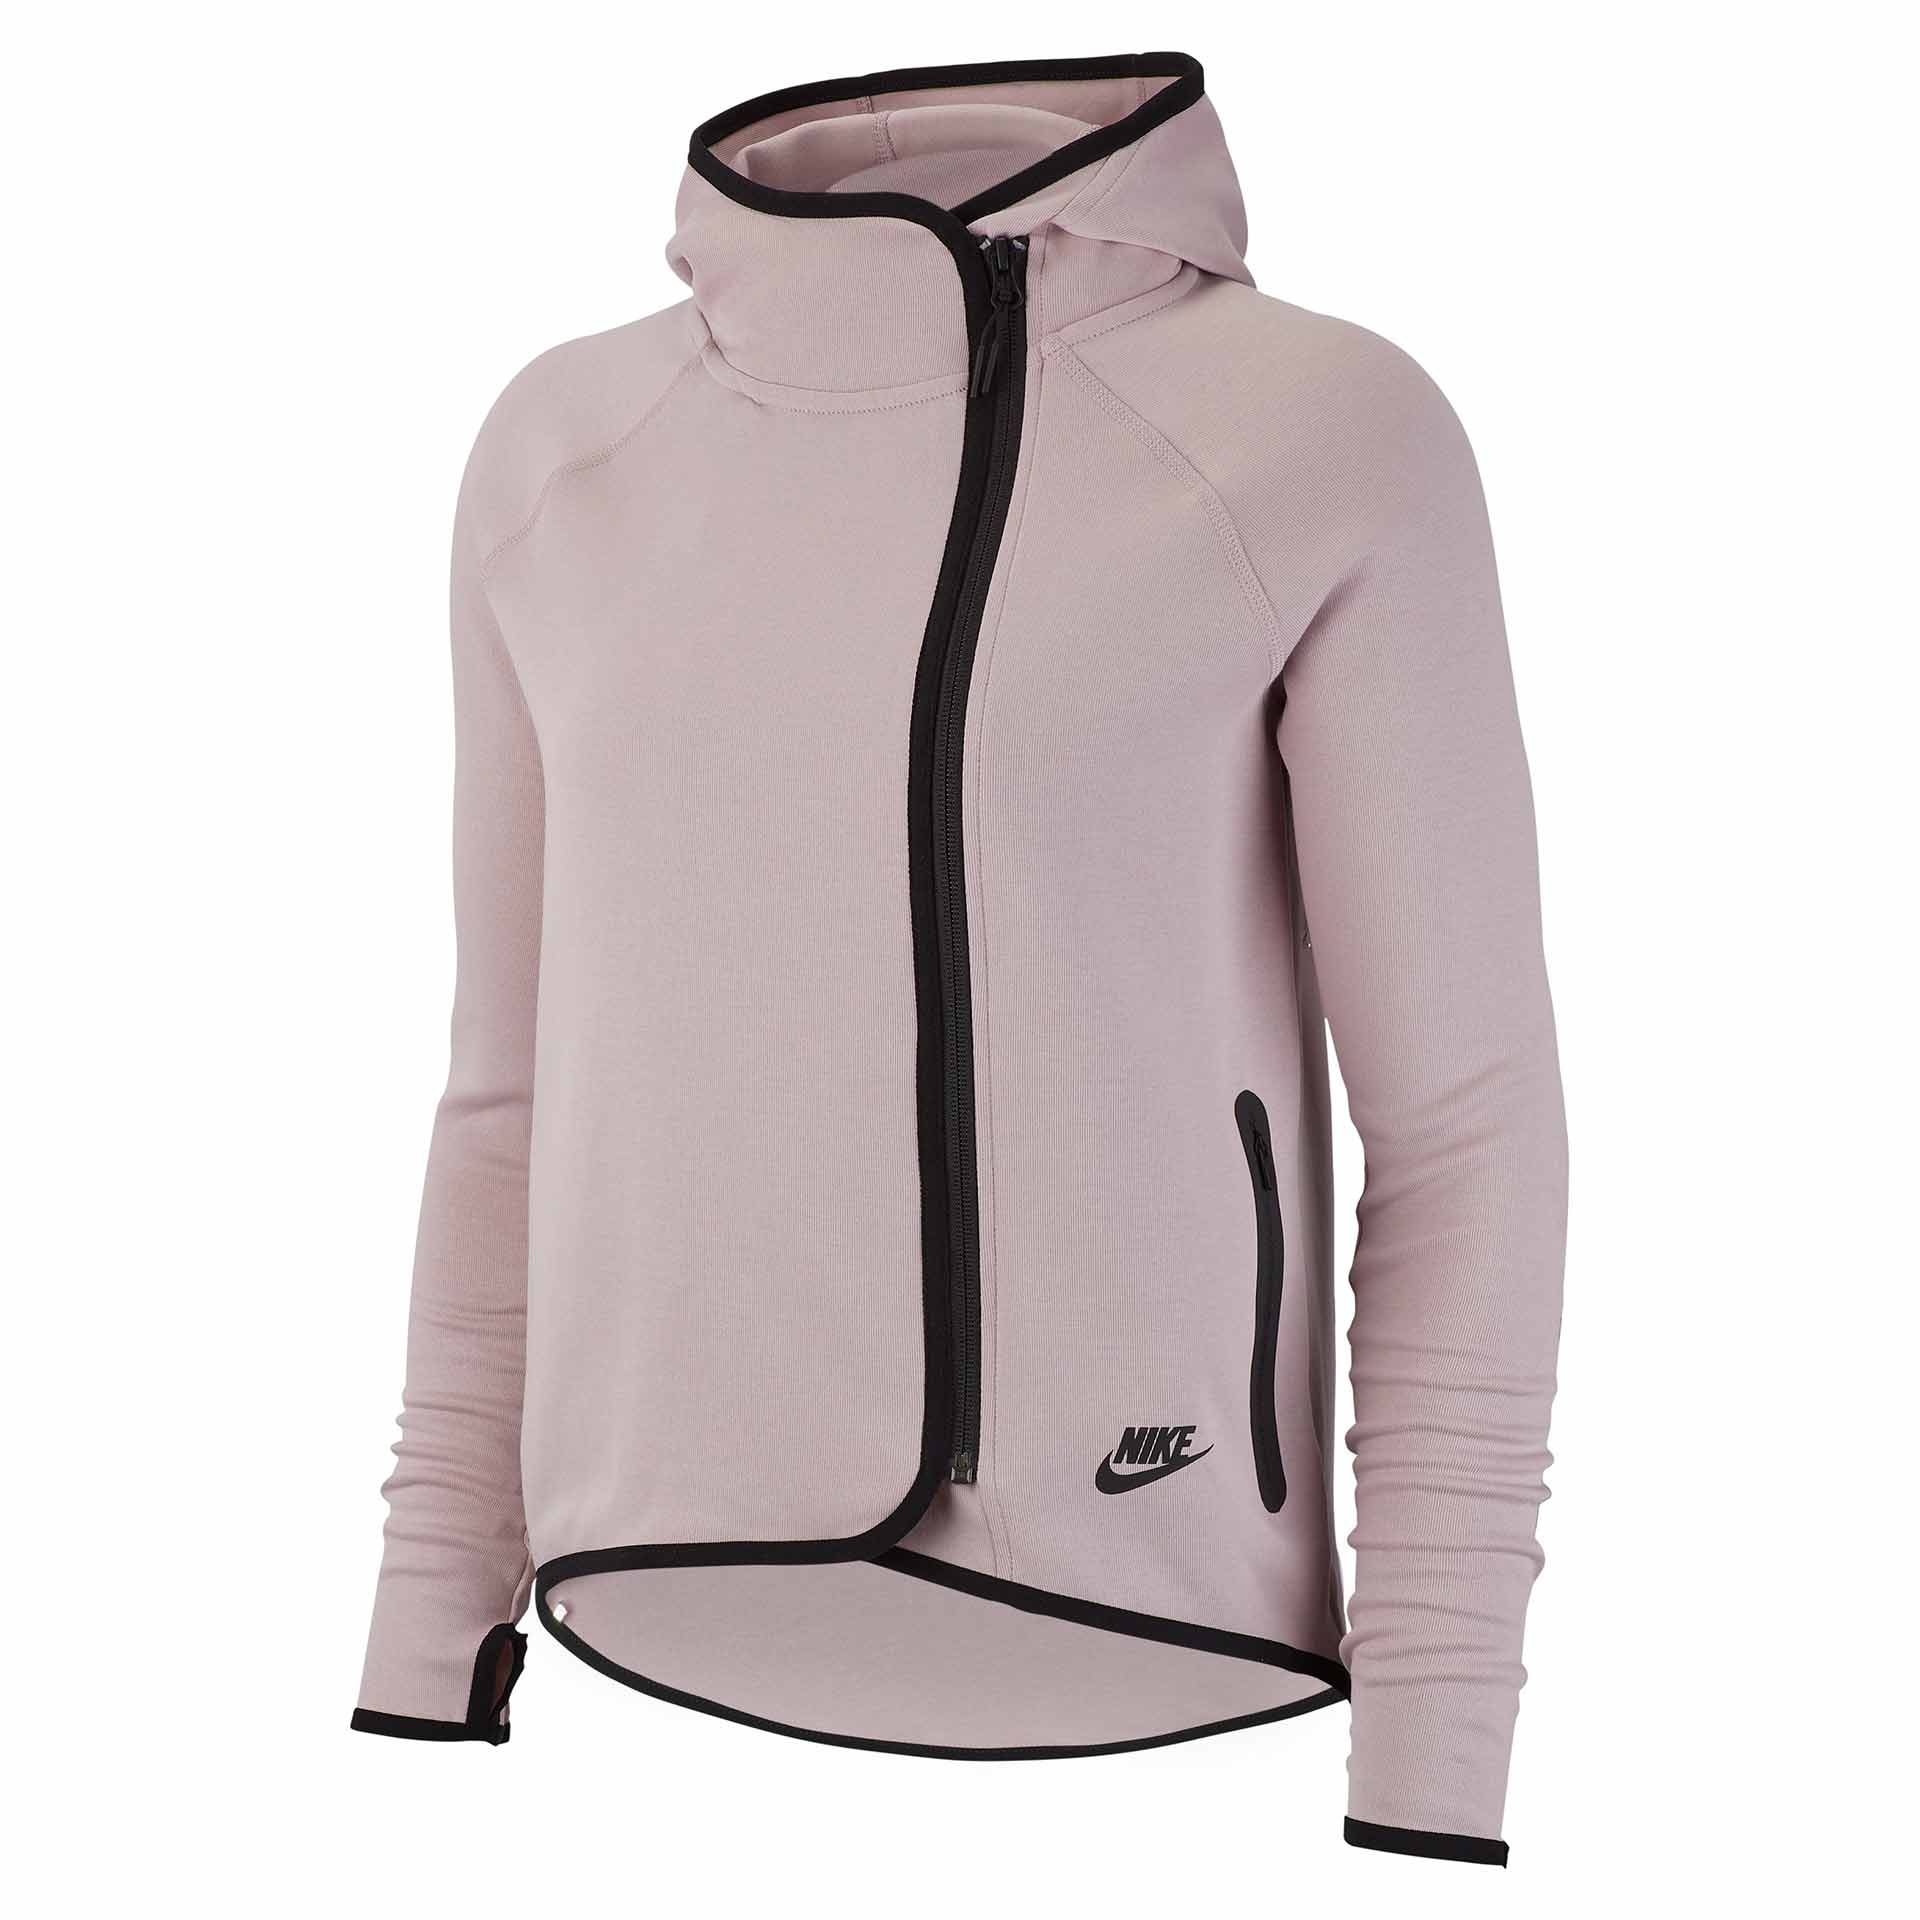 Repulsión Horno inferencia  W NSW TCH FLC CAPE FZ PARTICLE ROSE/, XS | Sudaderas Mujer | Dooers